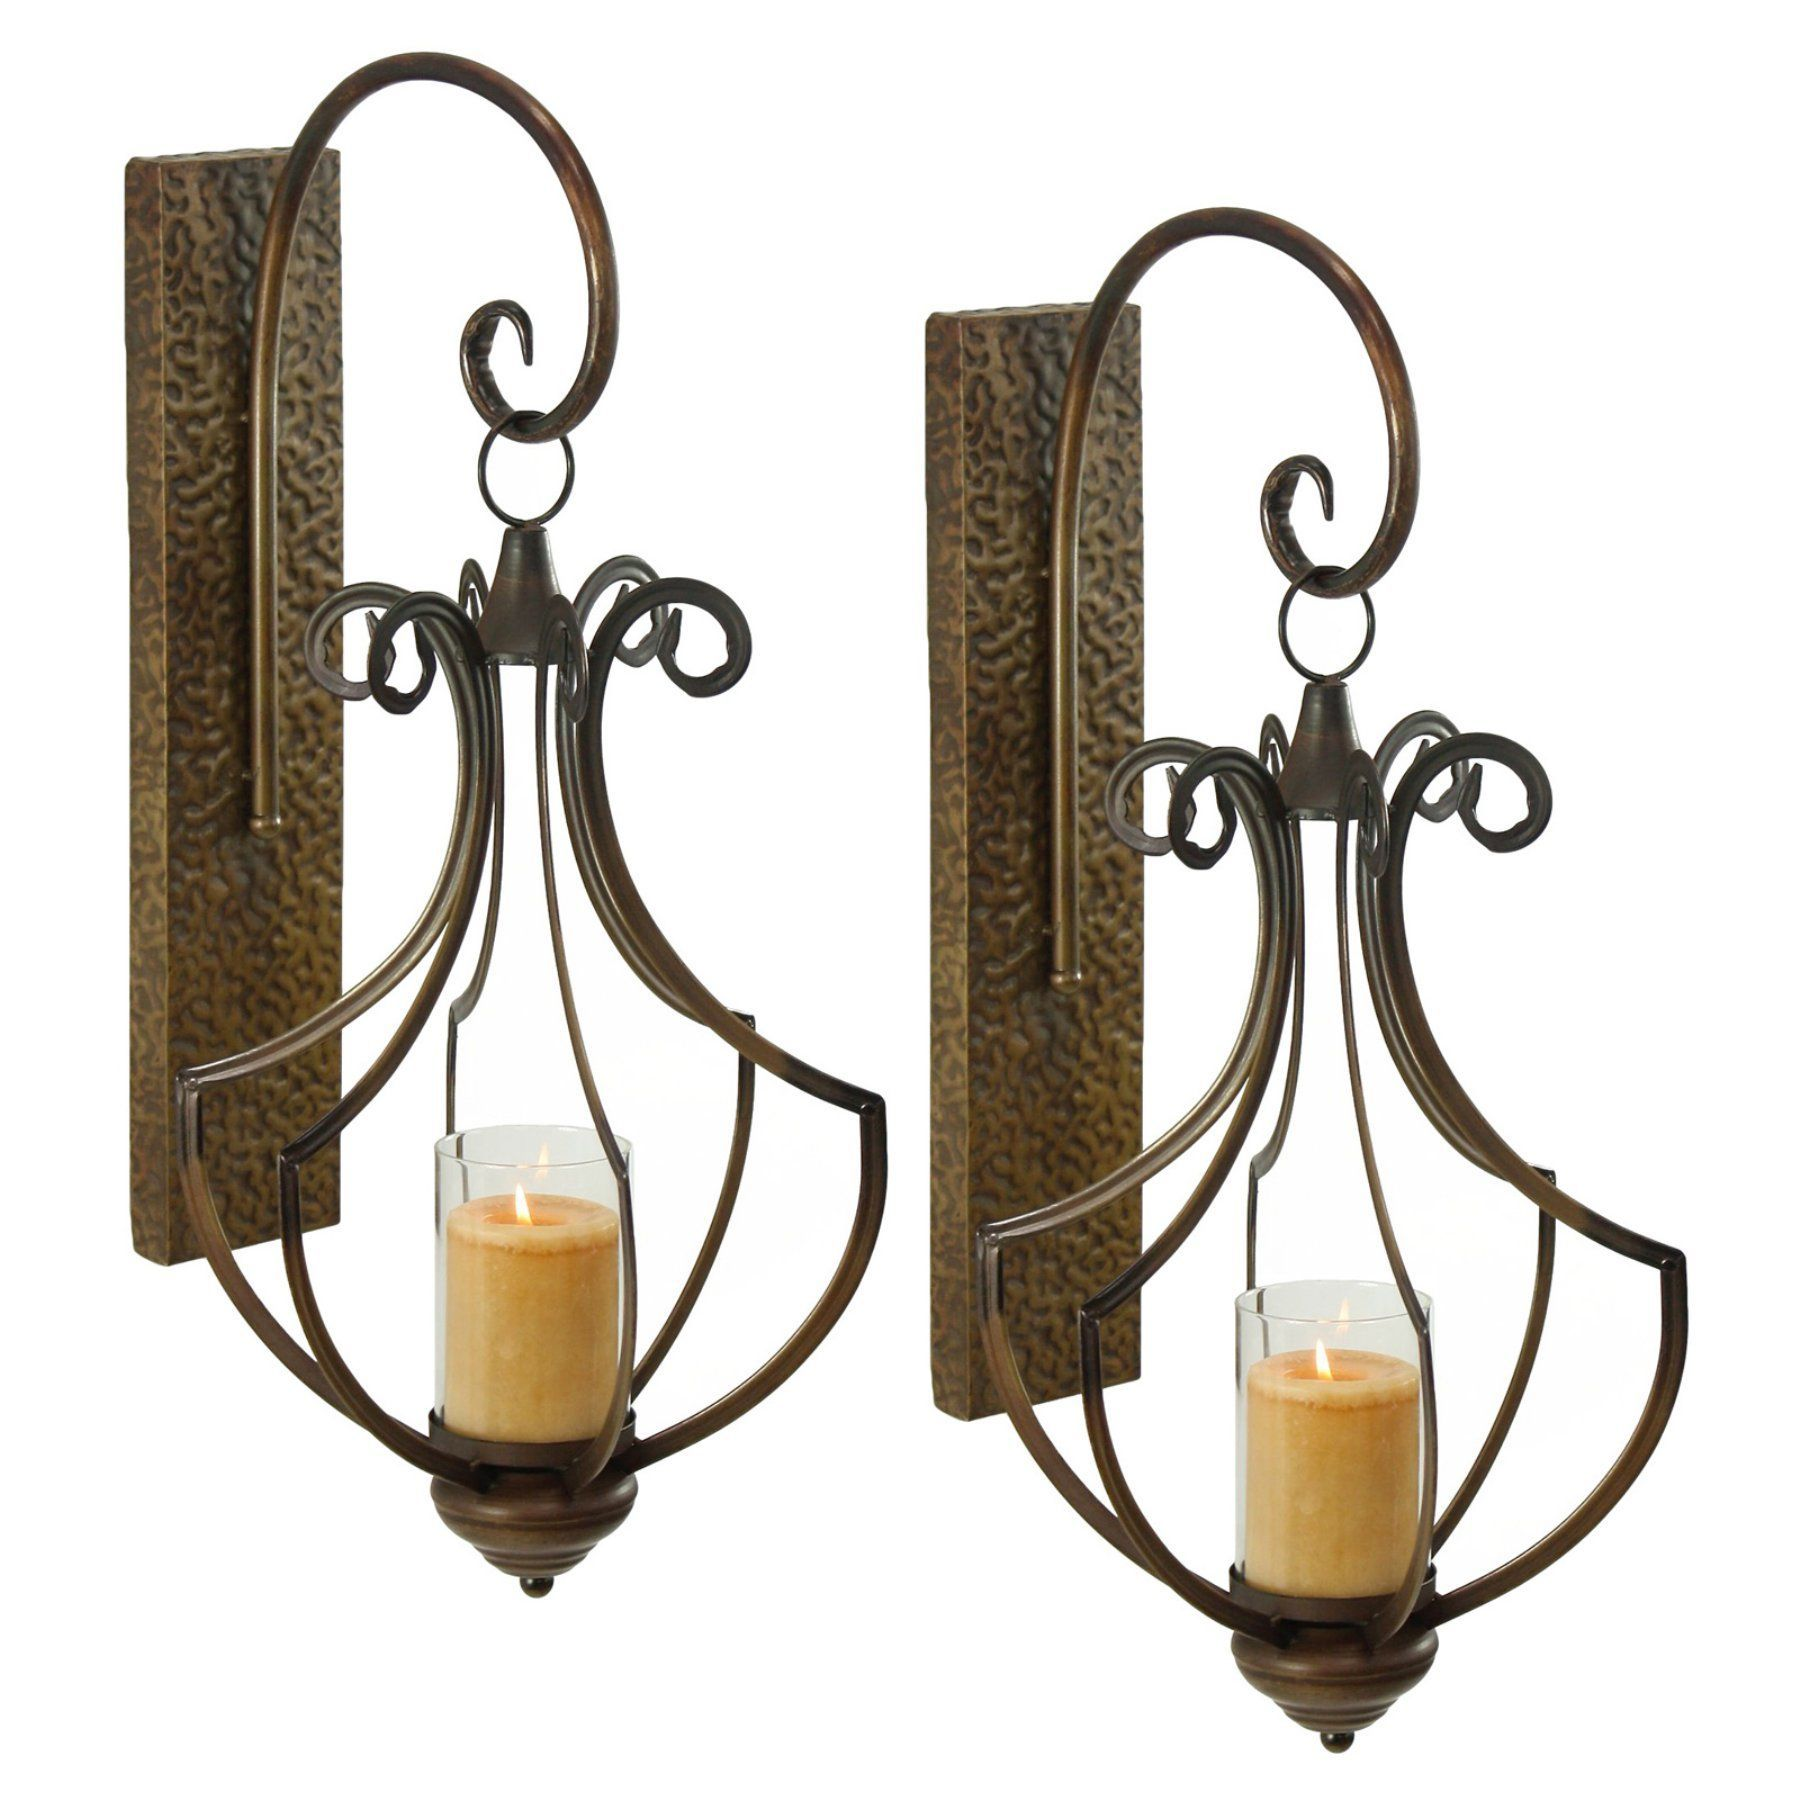 Aspire home accents ribley candle wall sconce set of